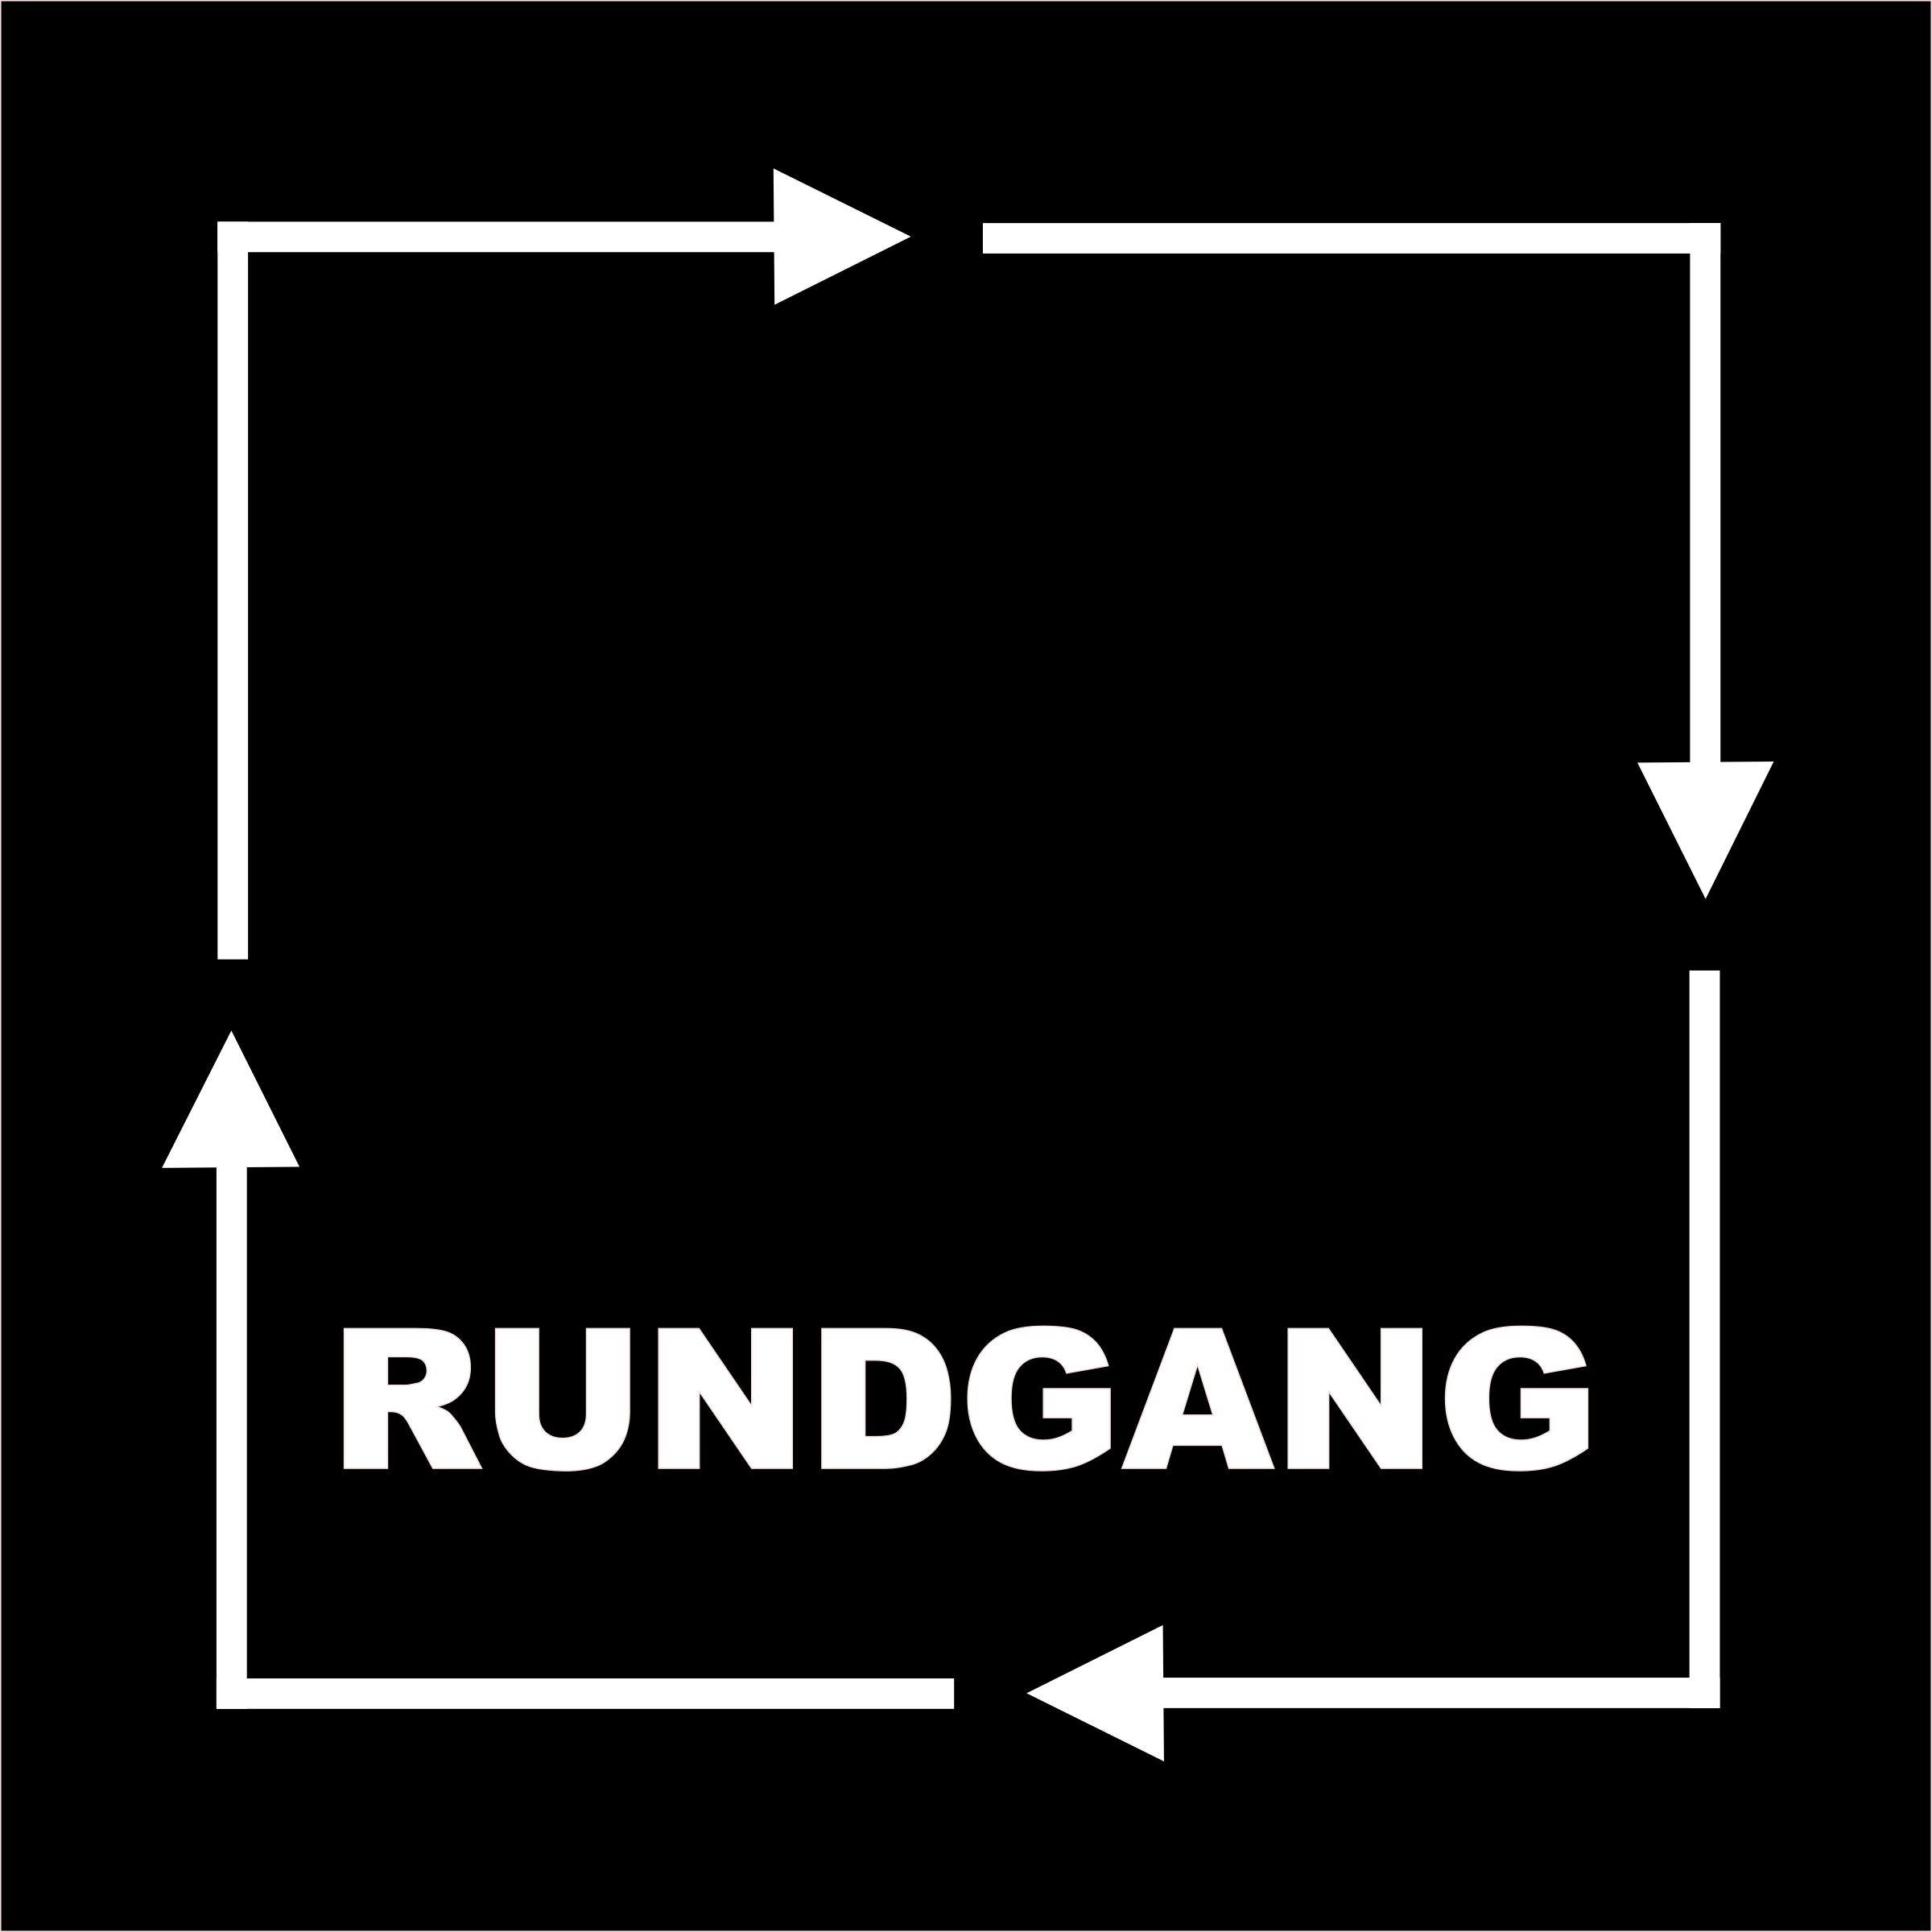 Rundgang by decom